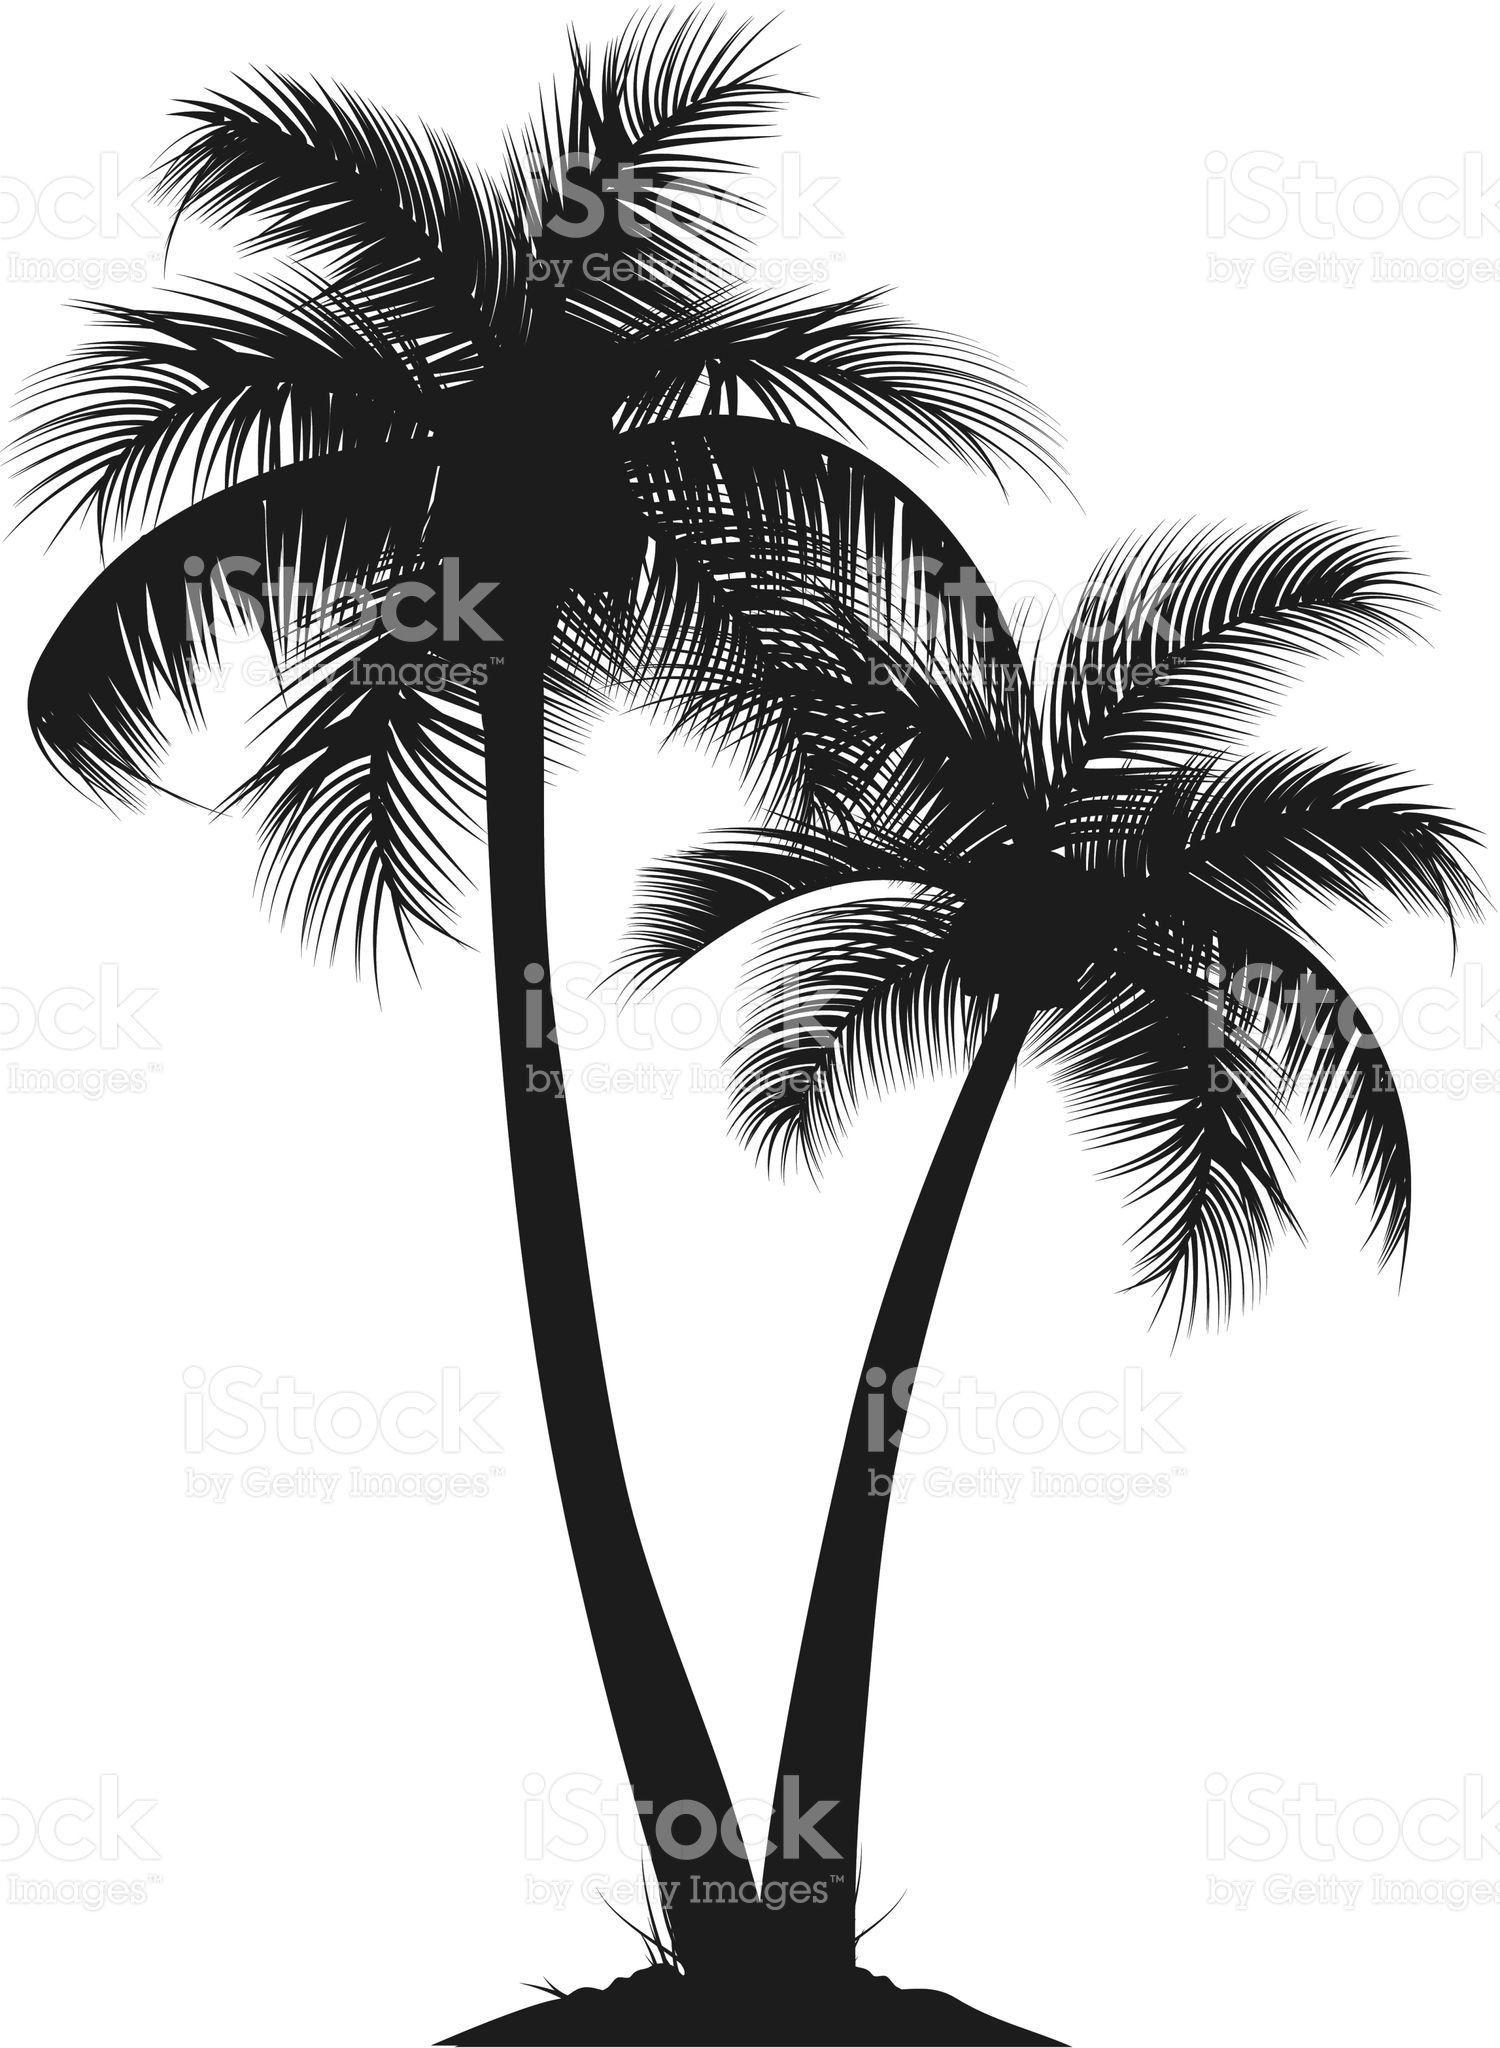 Palm Leaf Vector Images (over 75,000) - Vector Art, Images